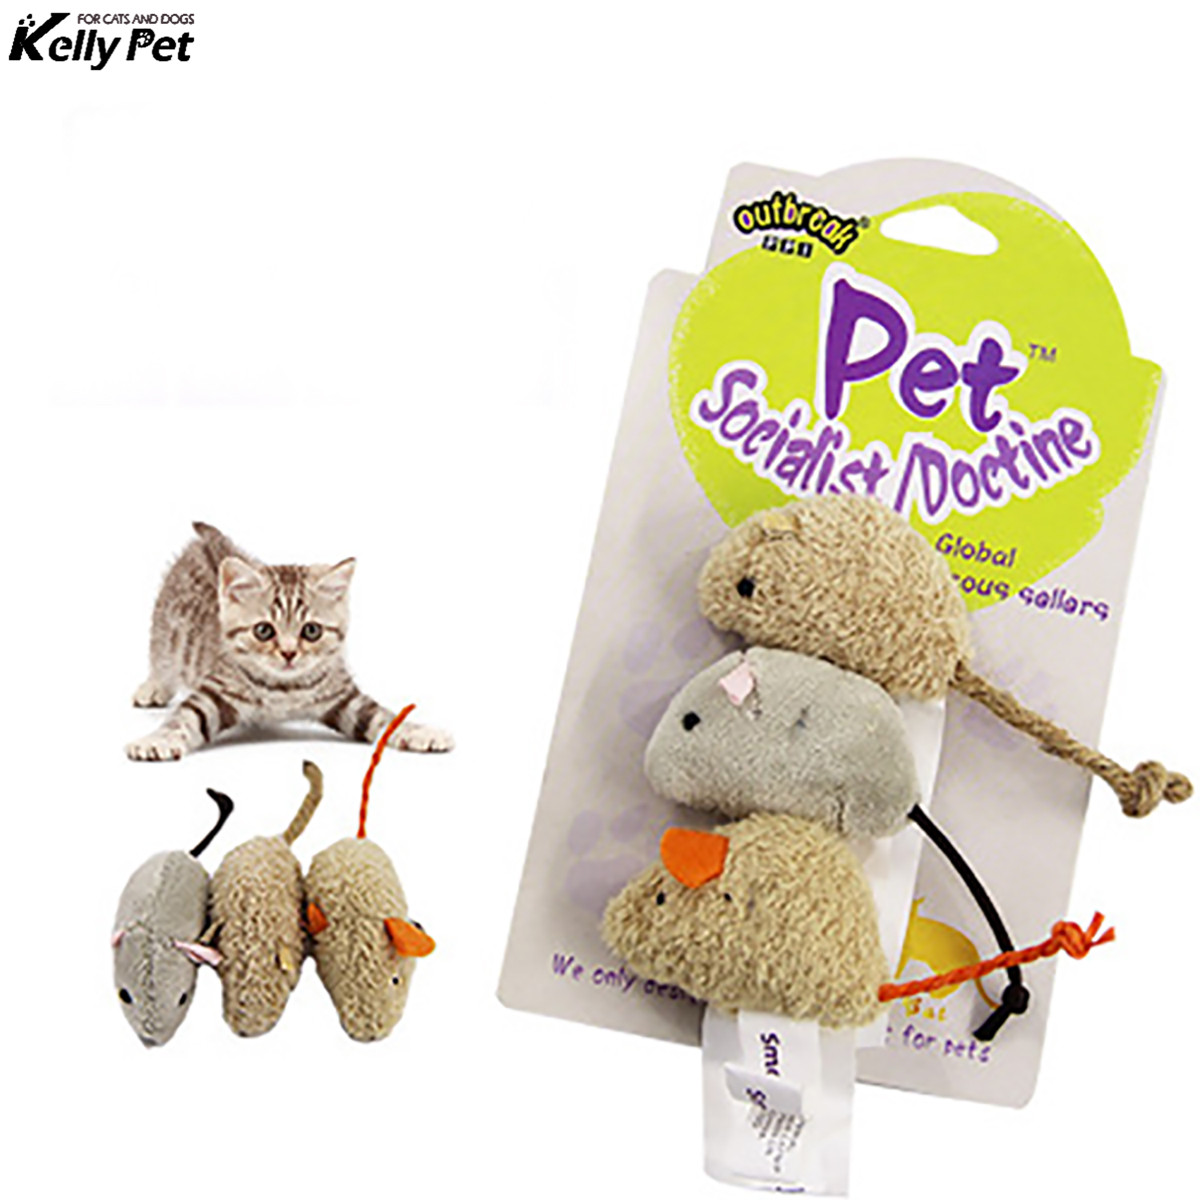 3pcs New plush simulation mouse cat toy plush mouse Cat scratch bite resistance interactive mouse toy palying toy for cat kitten in Dog Toys from Home Garden